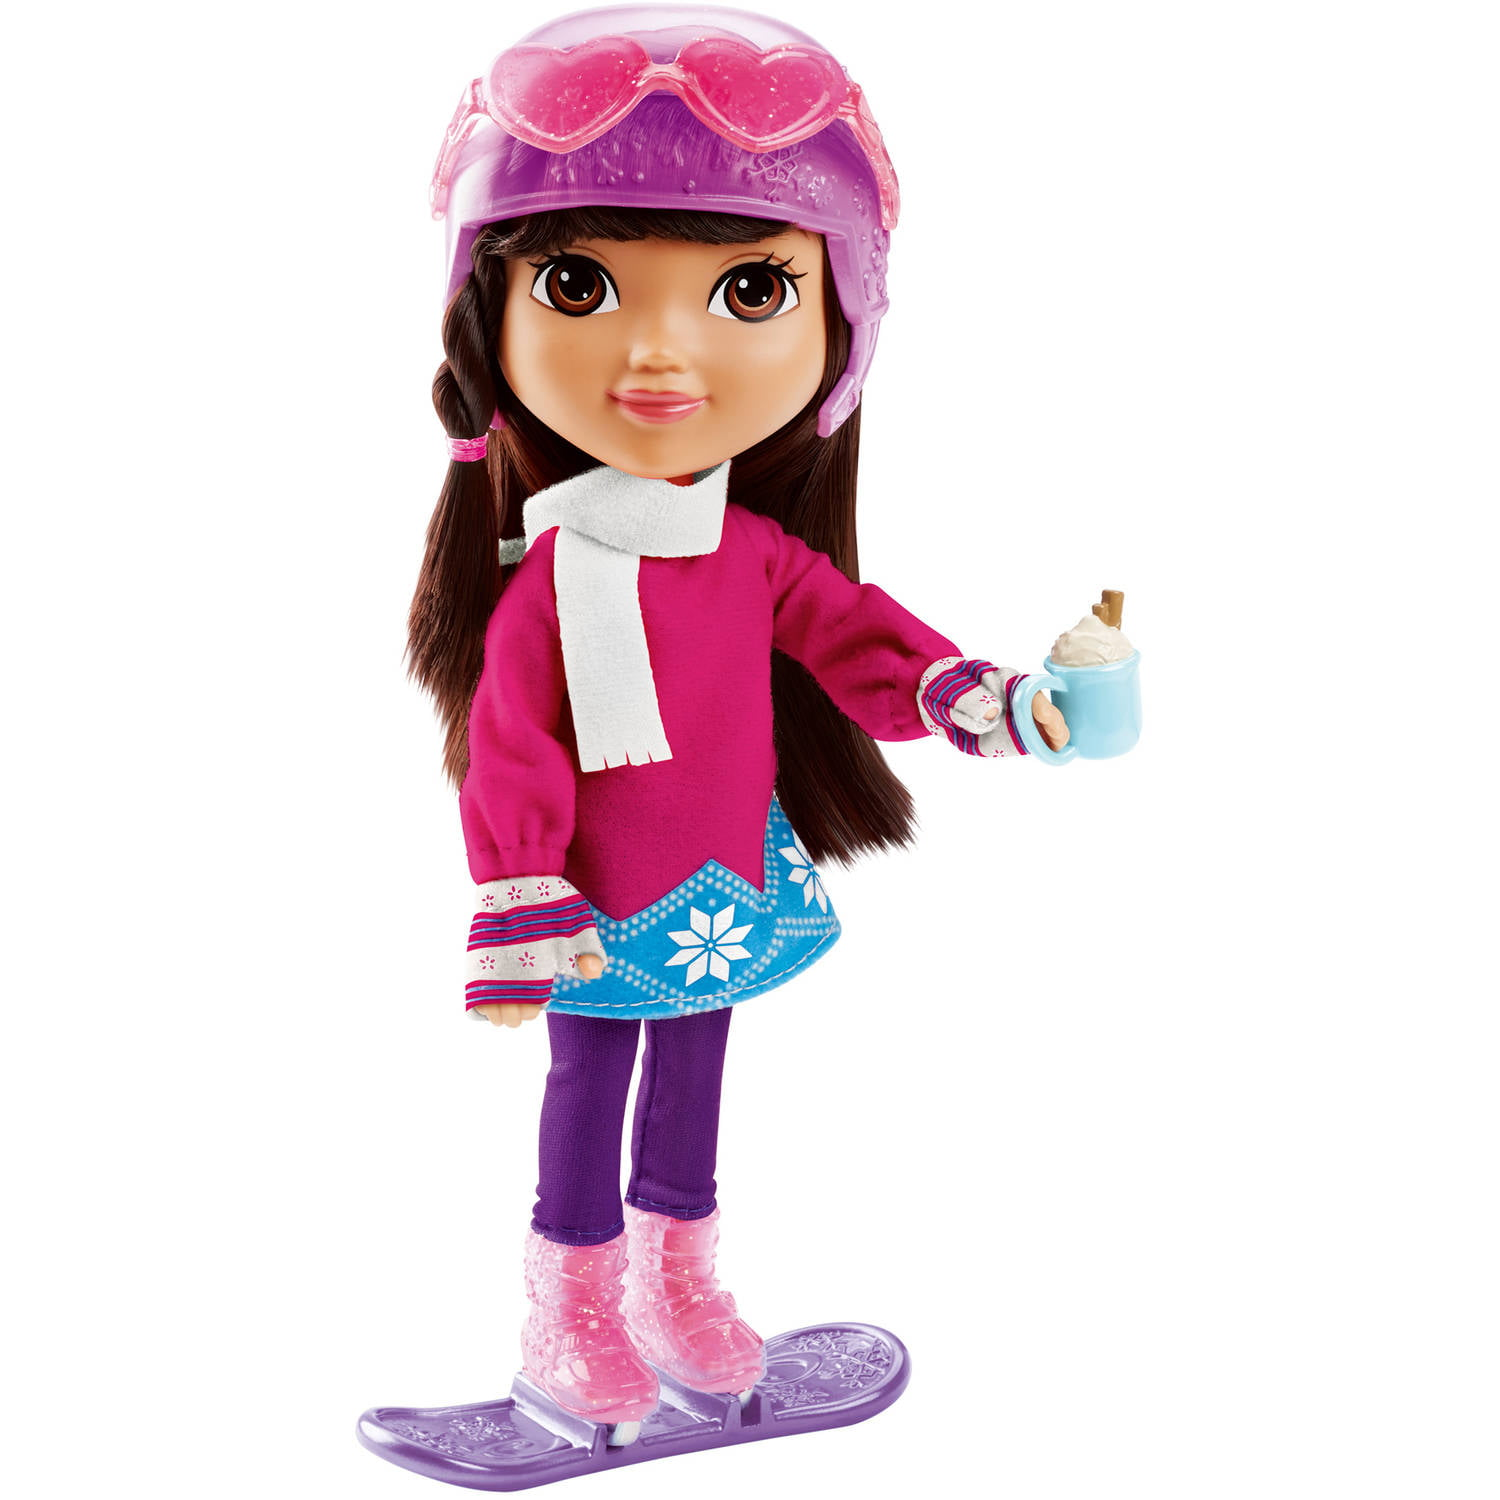 Fisher Price Nickelodeon Dora and Friends Dora Loves Winter by Fisher Price - Import